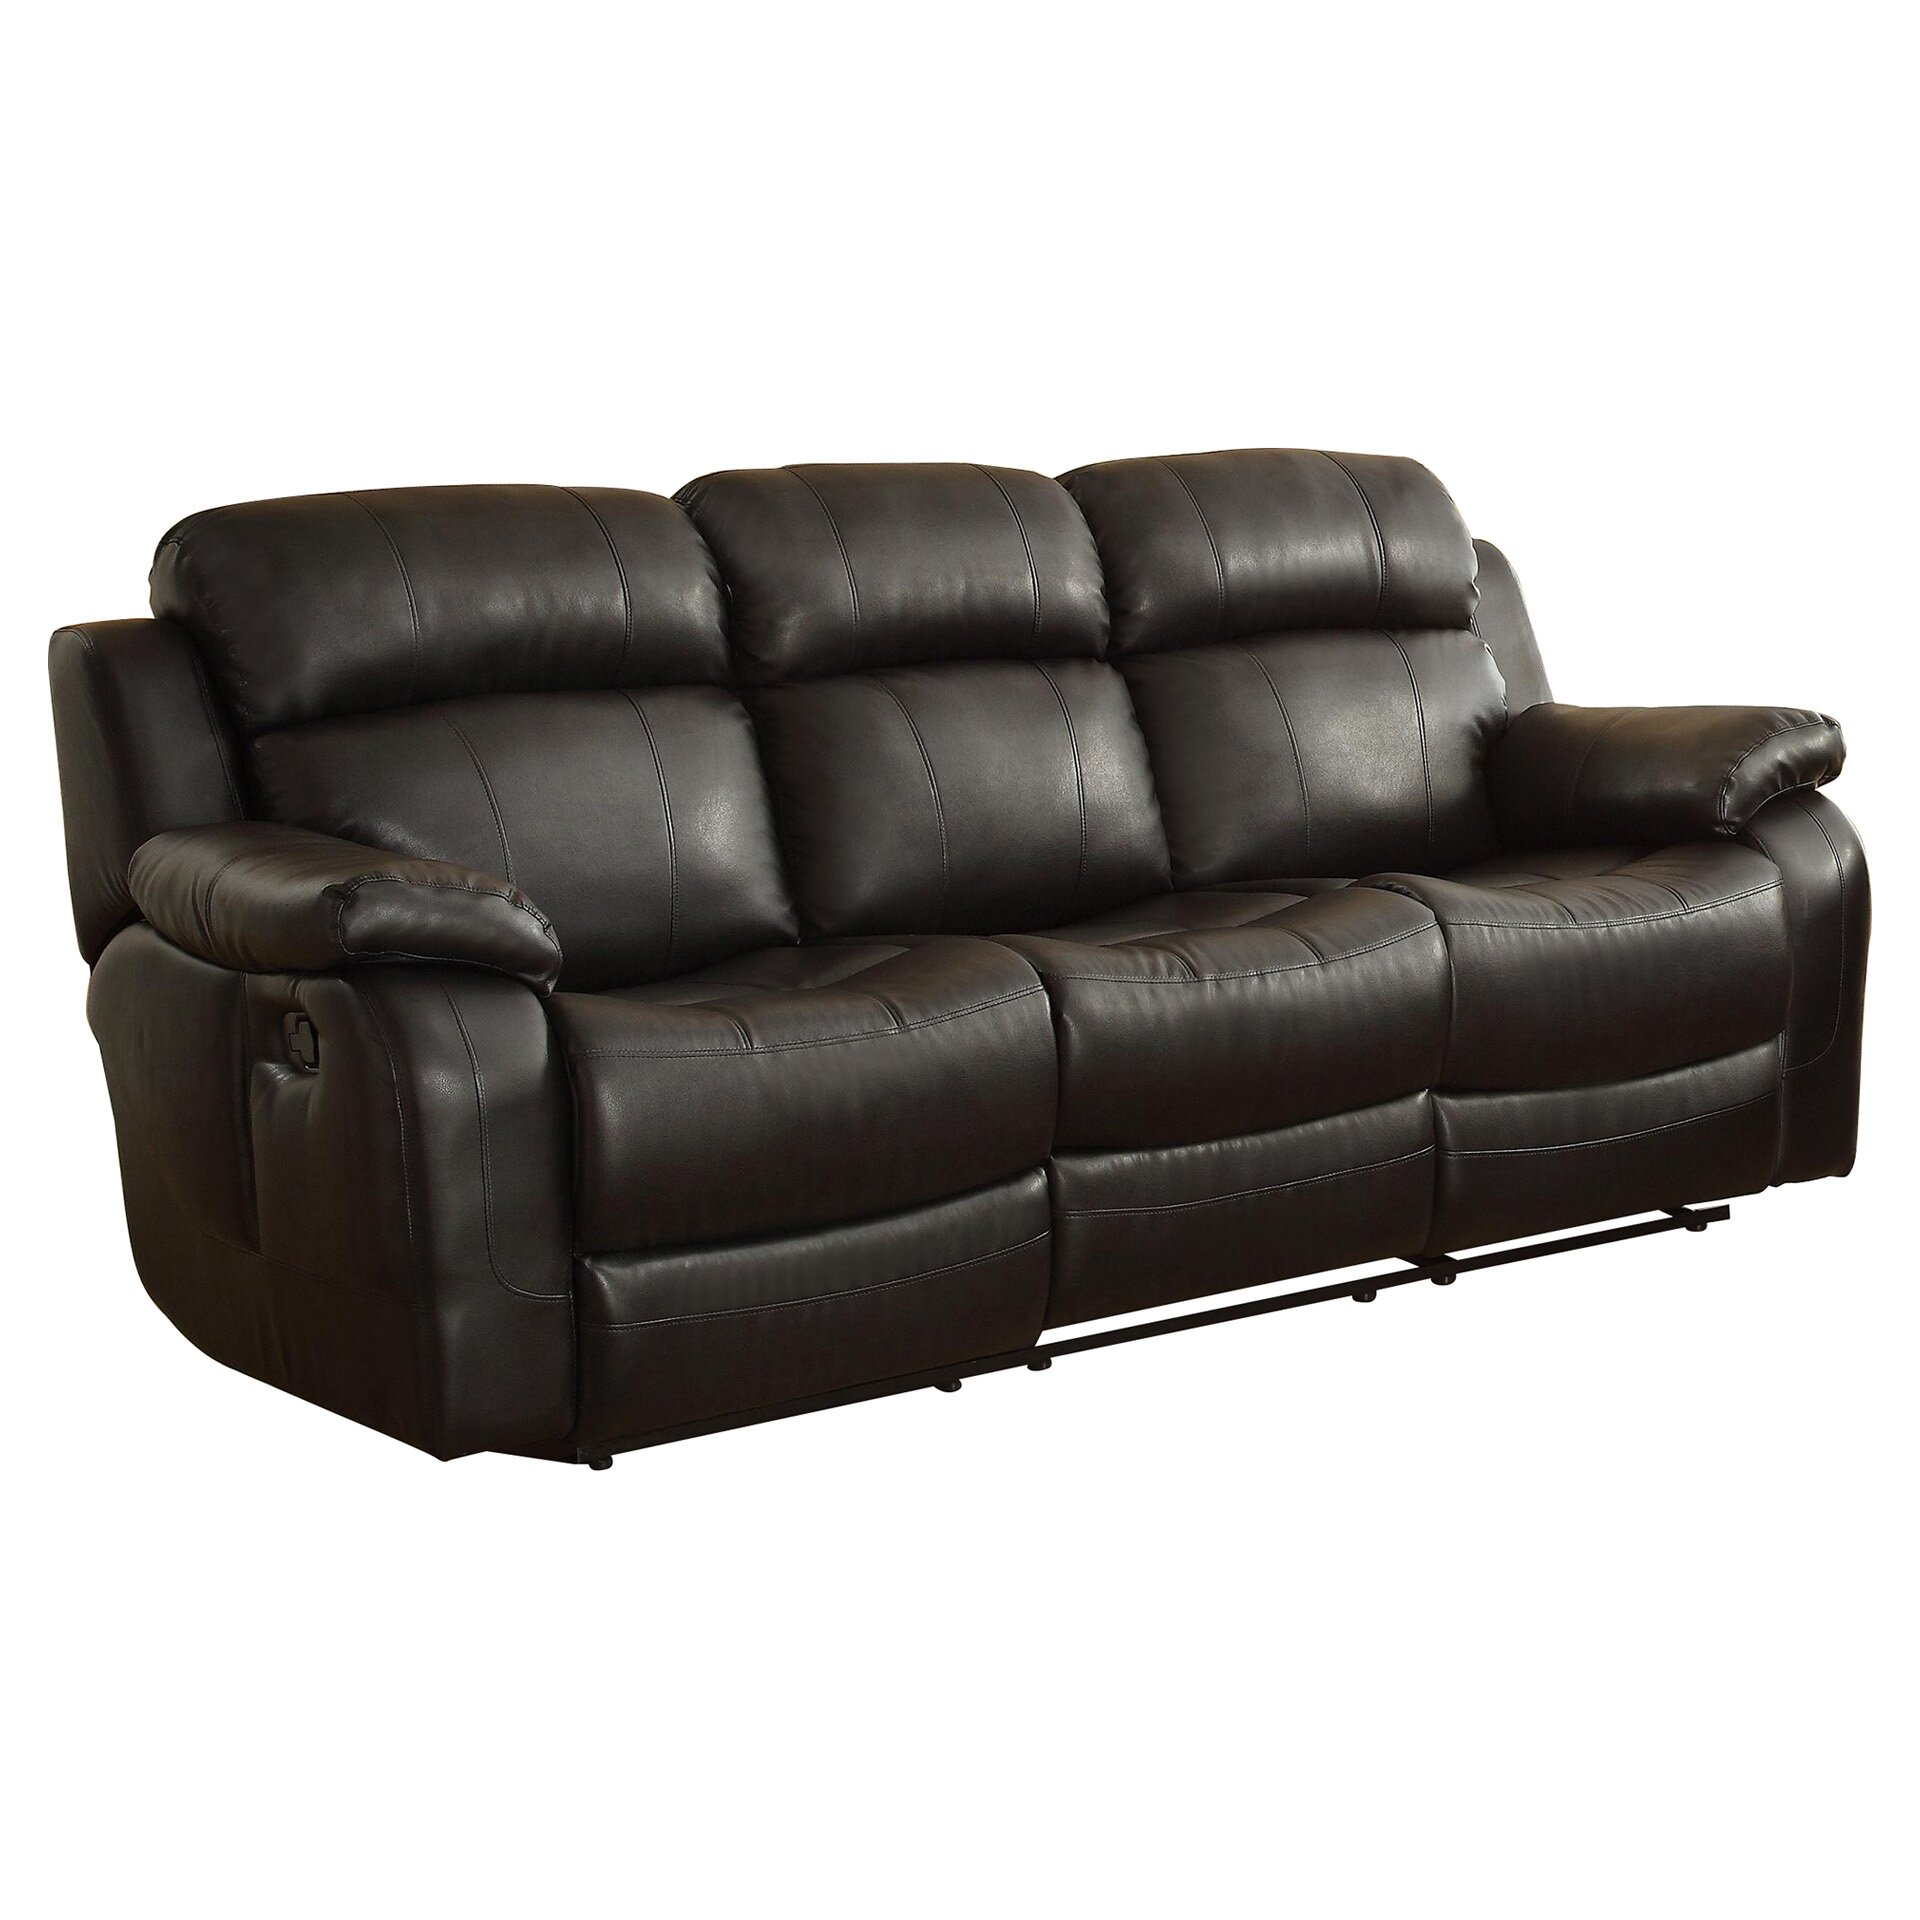 How To Take Apart A Double Recliner Sofa